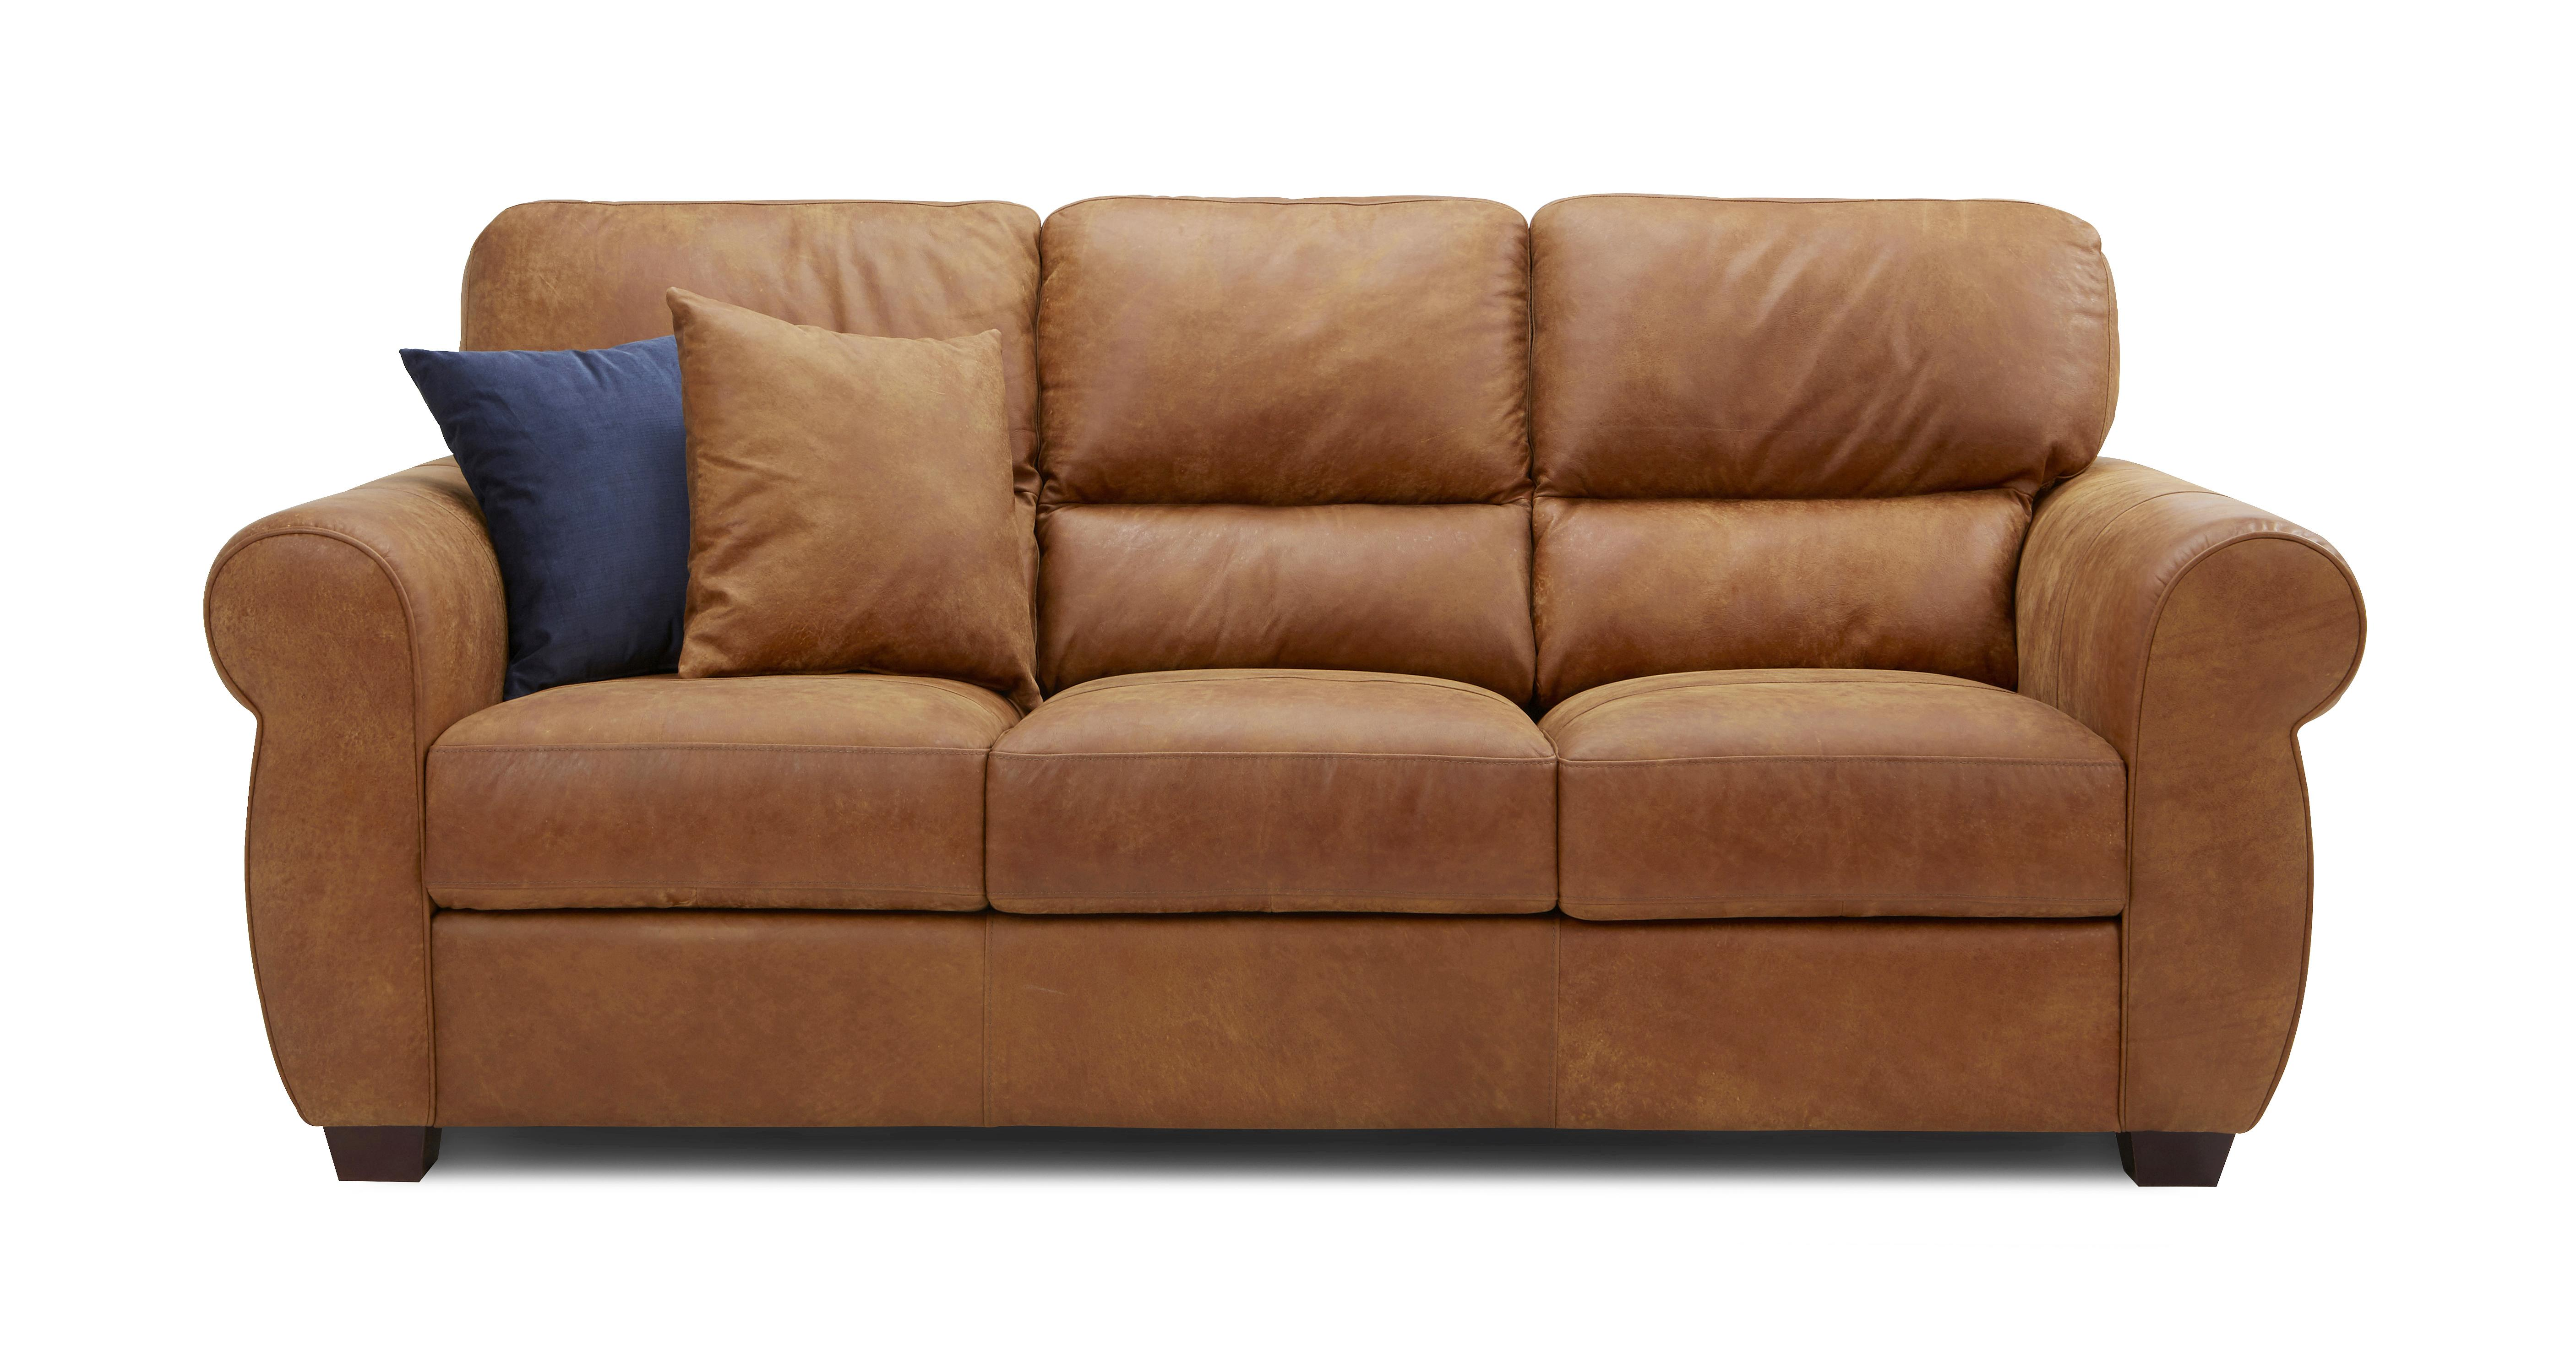 Senzo 3 Seater Sofa Saddle Dfs ~ Brown Leather Sofa With Studs